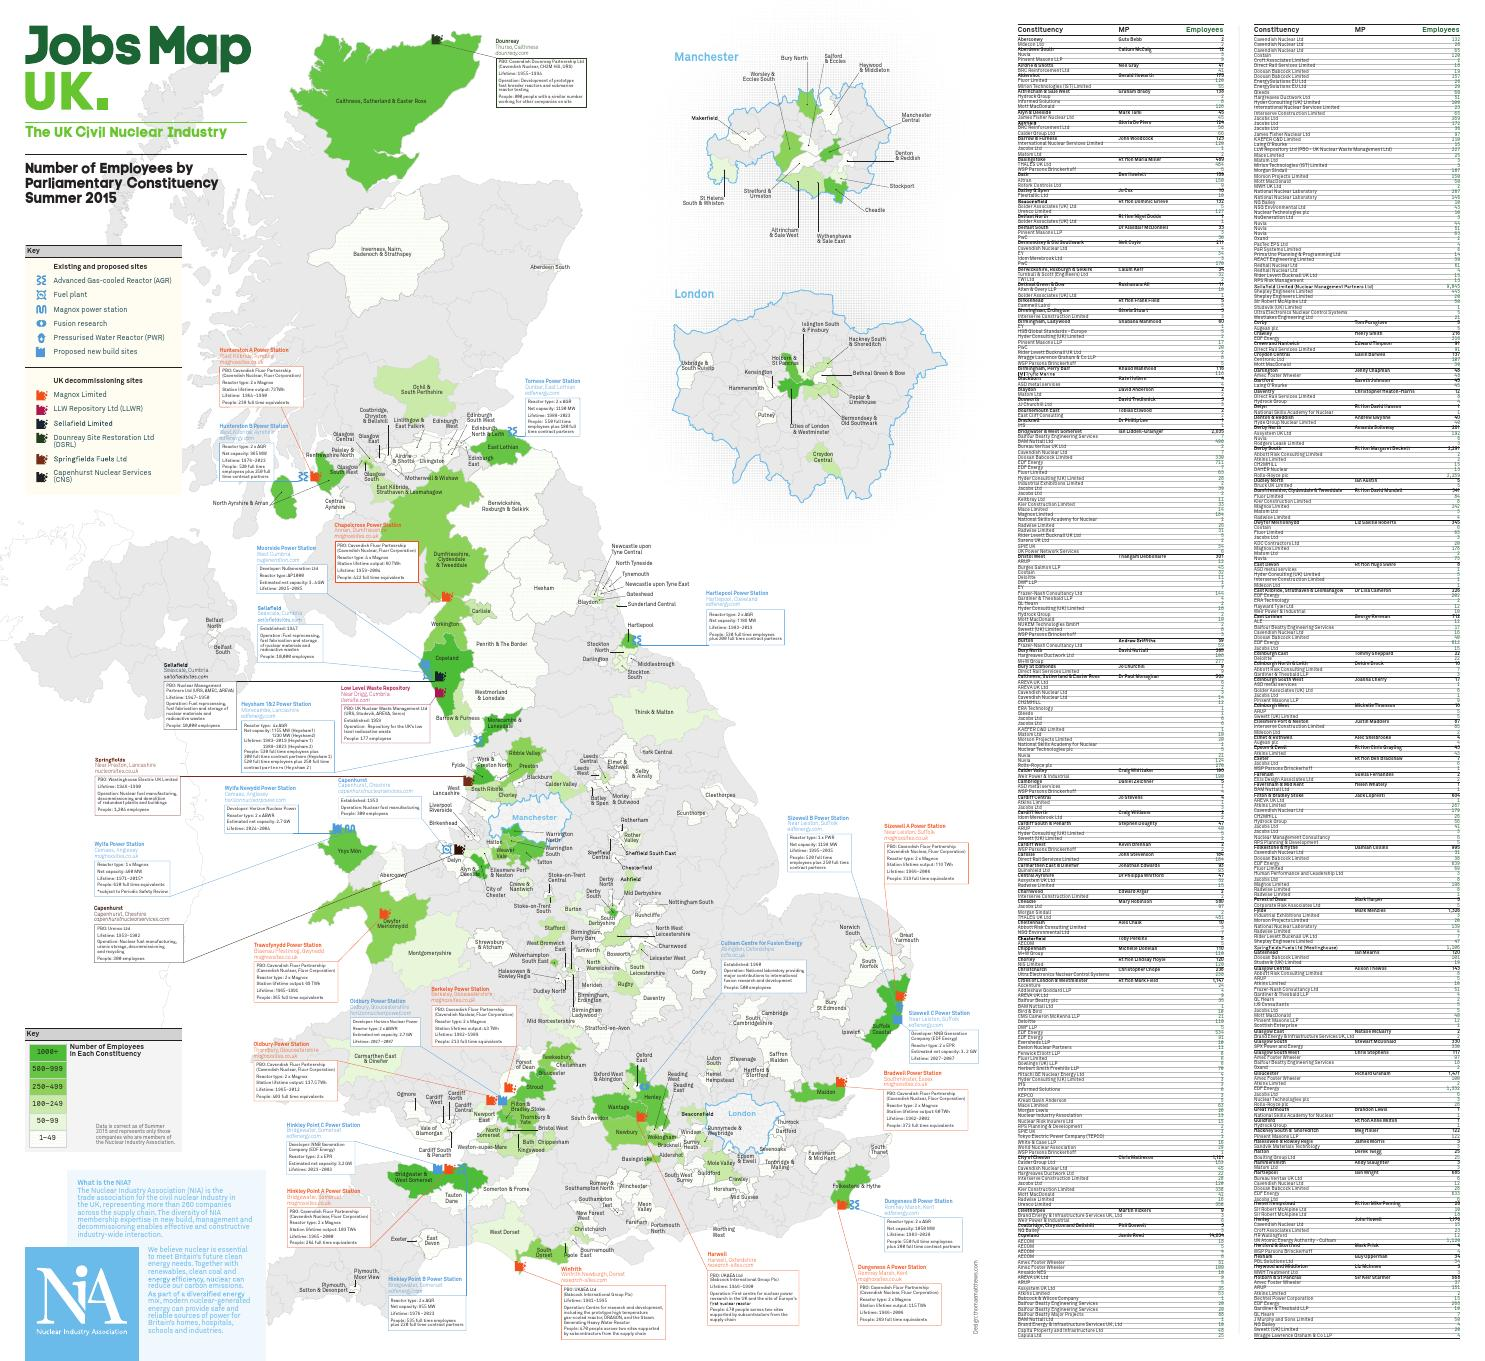 Jobs Map UK 2016 by Nuclear Industry Association issuu